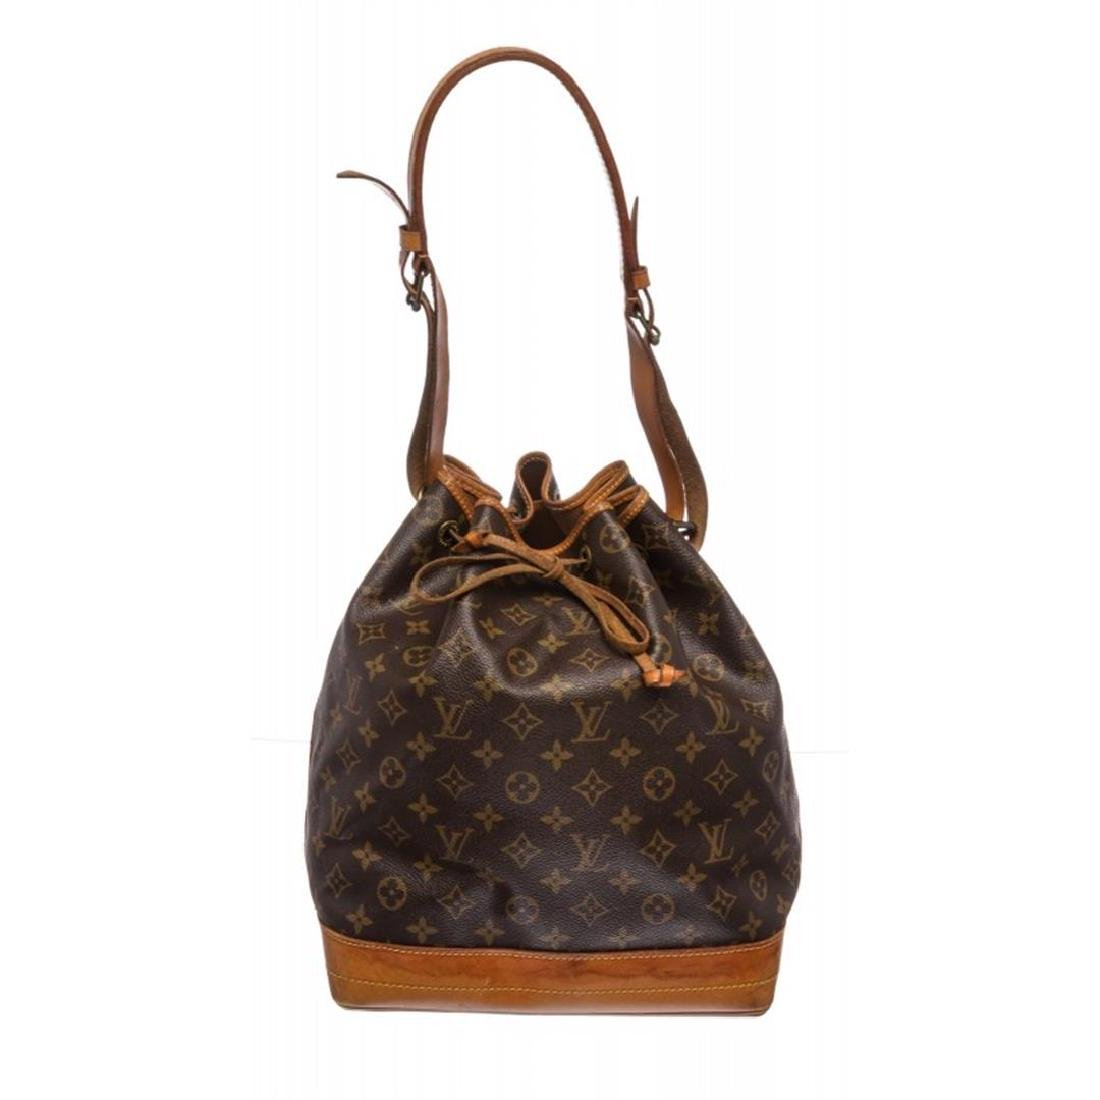 Louis Vuitton Monogram Canvas Leather Noe GM Drawstring